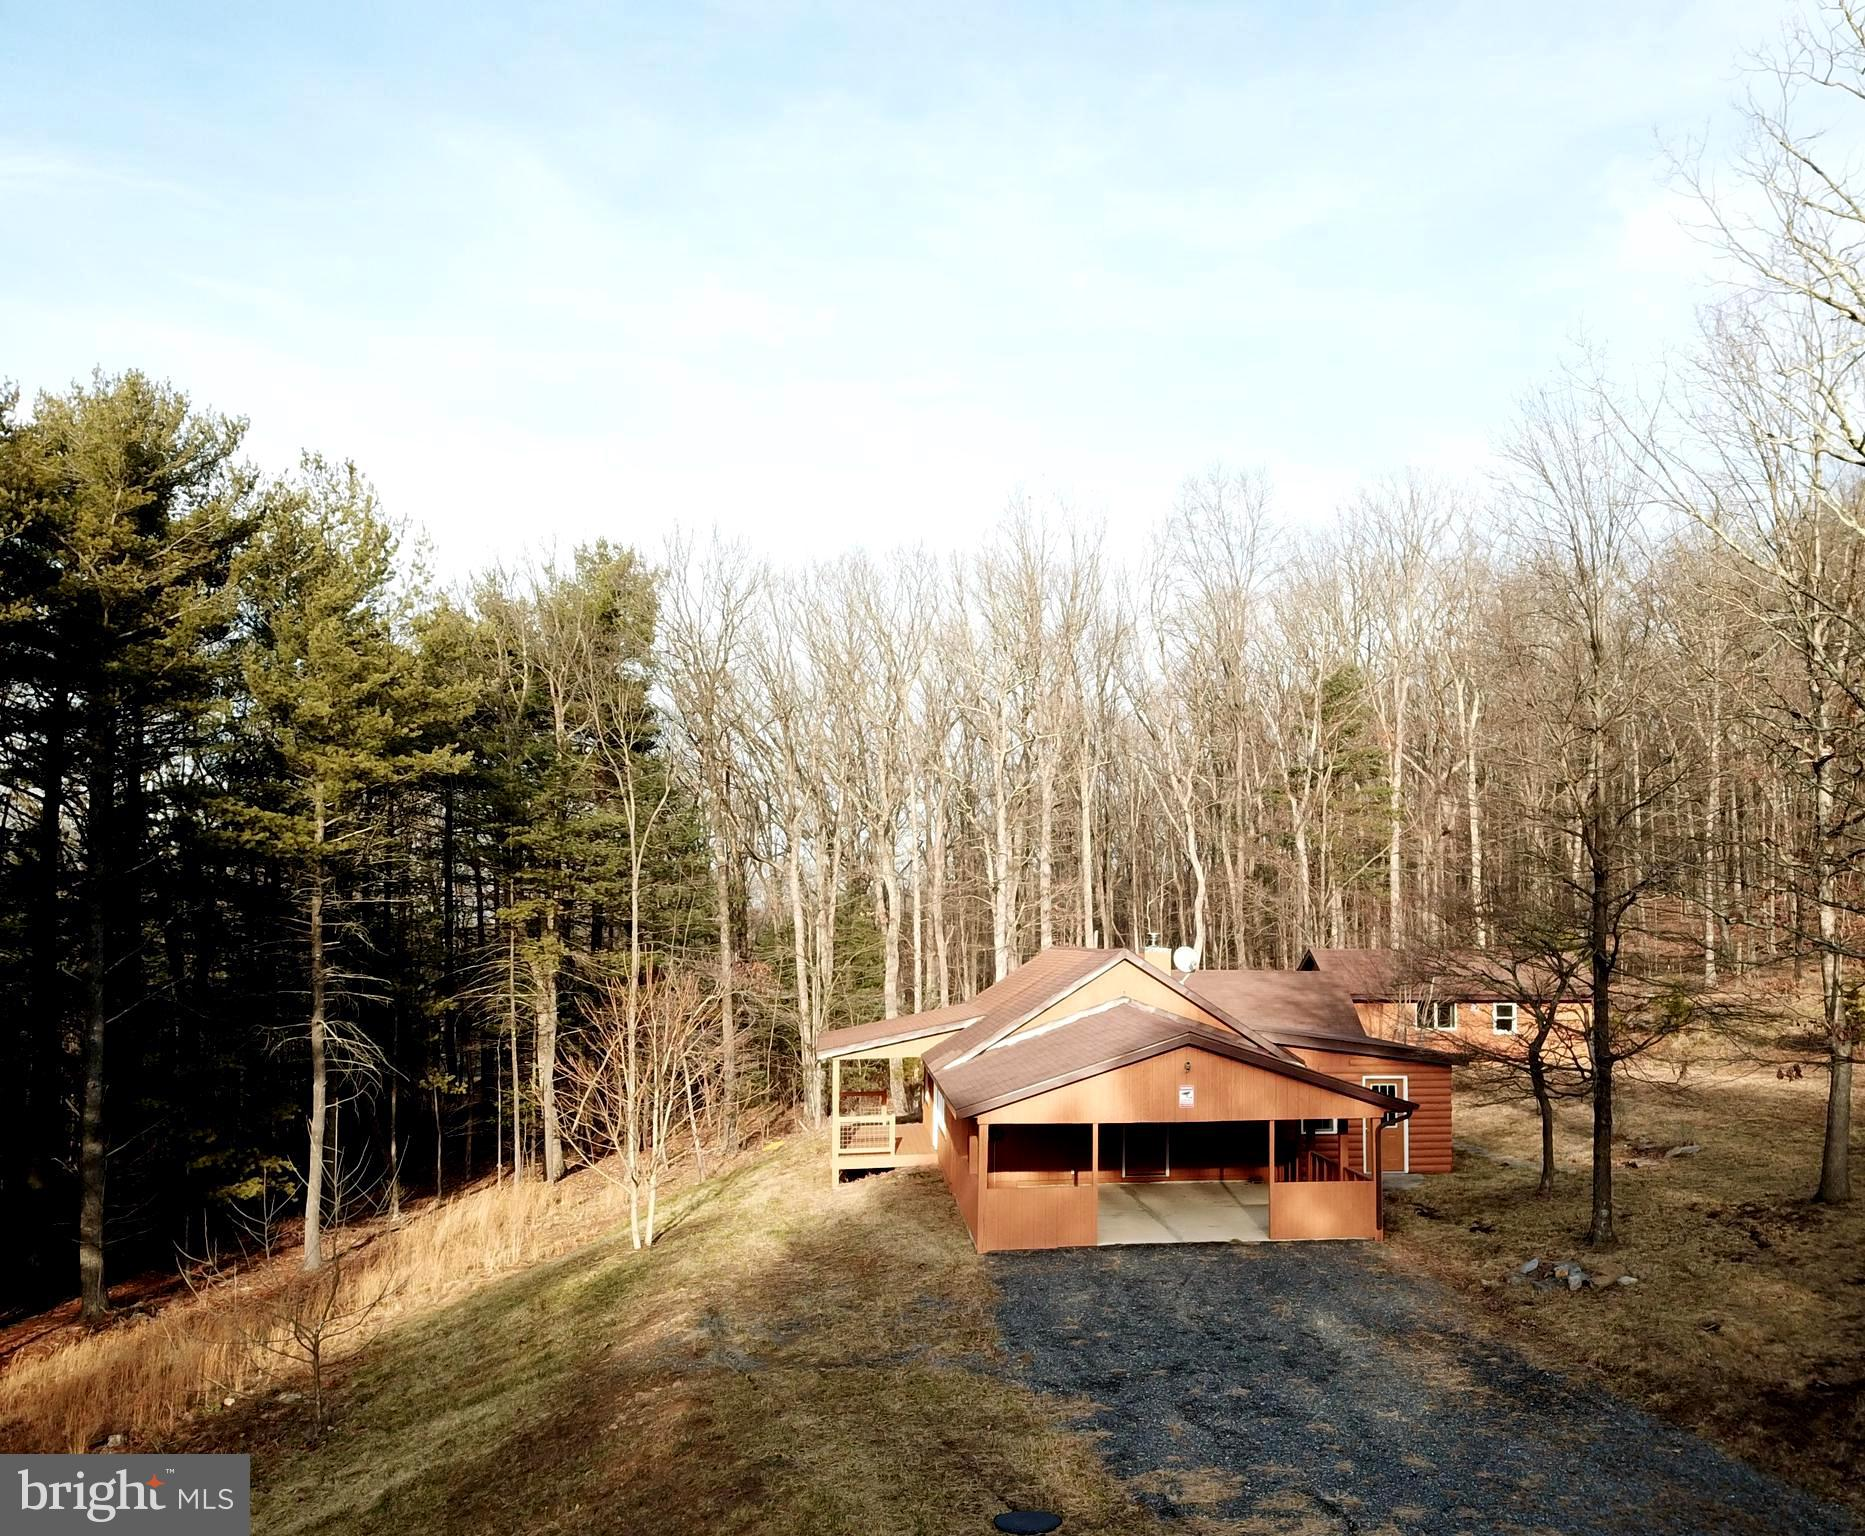 1103 SIRBAUGH ROAD, CAPON BRIDGE, WV 26711